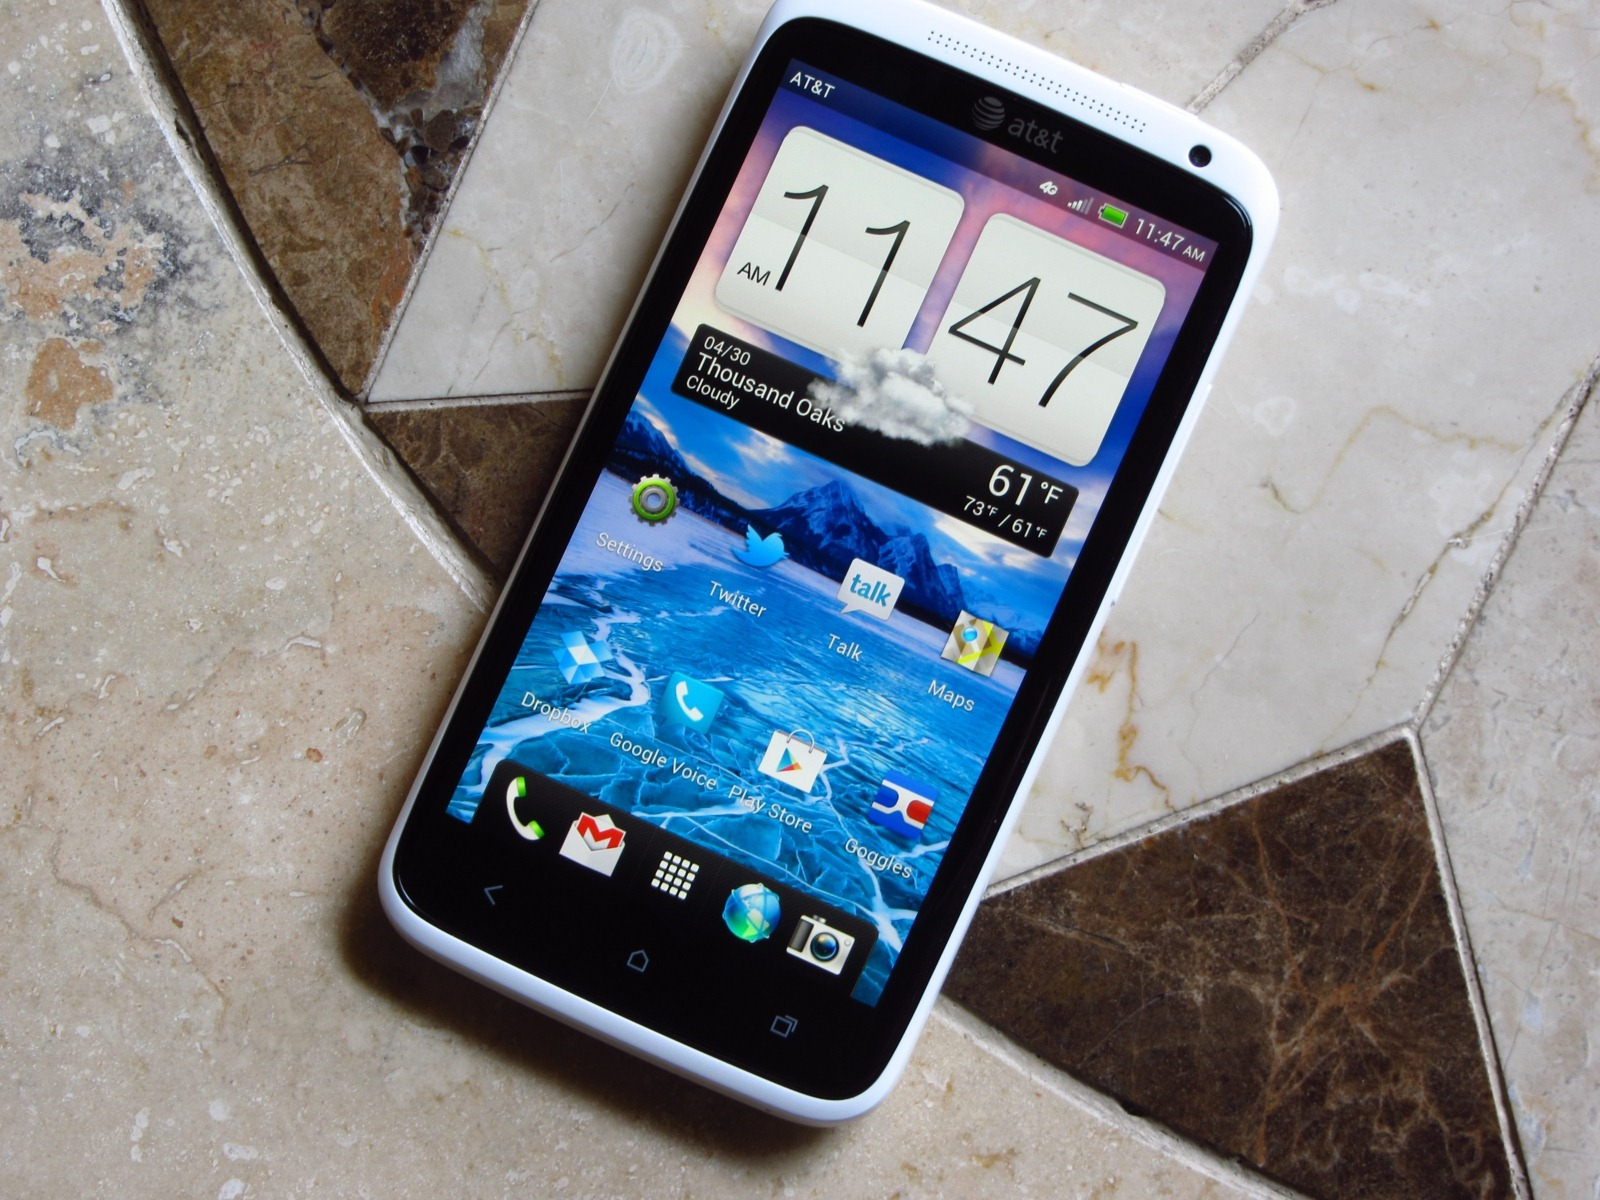 HTC One X For AT&T Review: The First Of The Next Generation